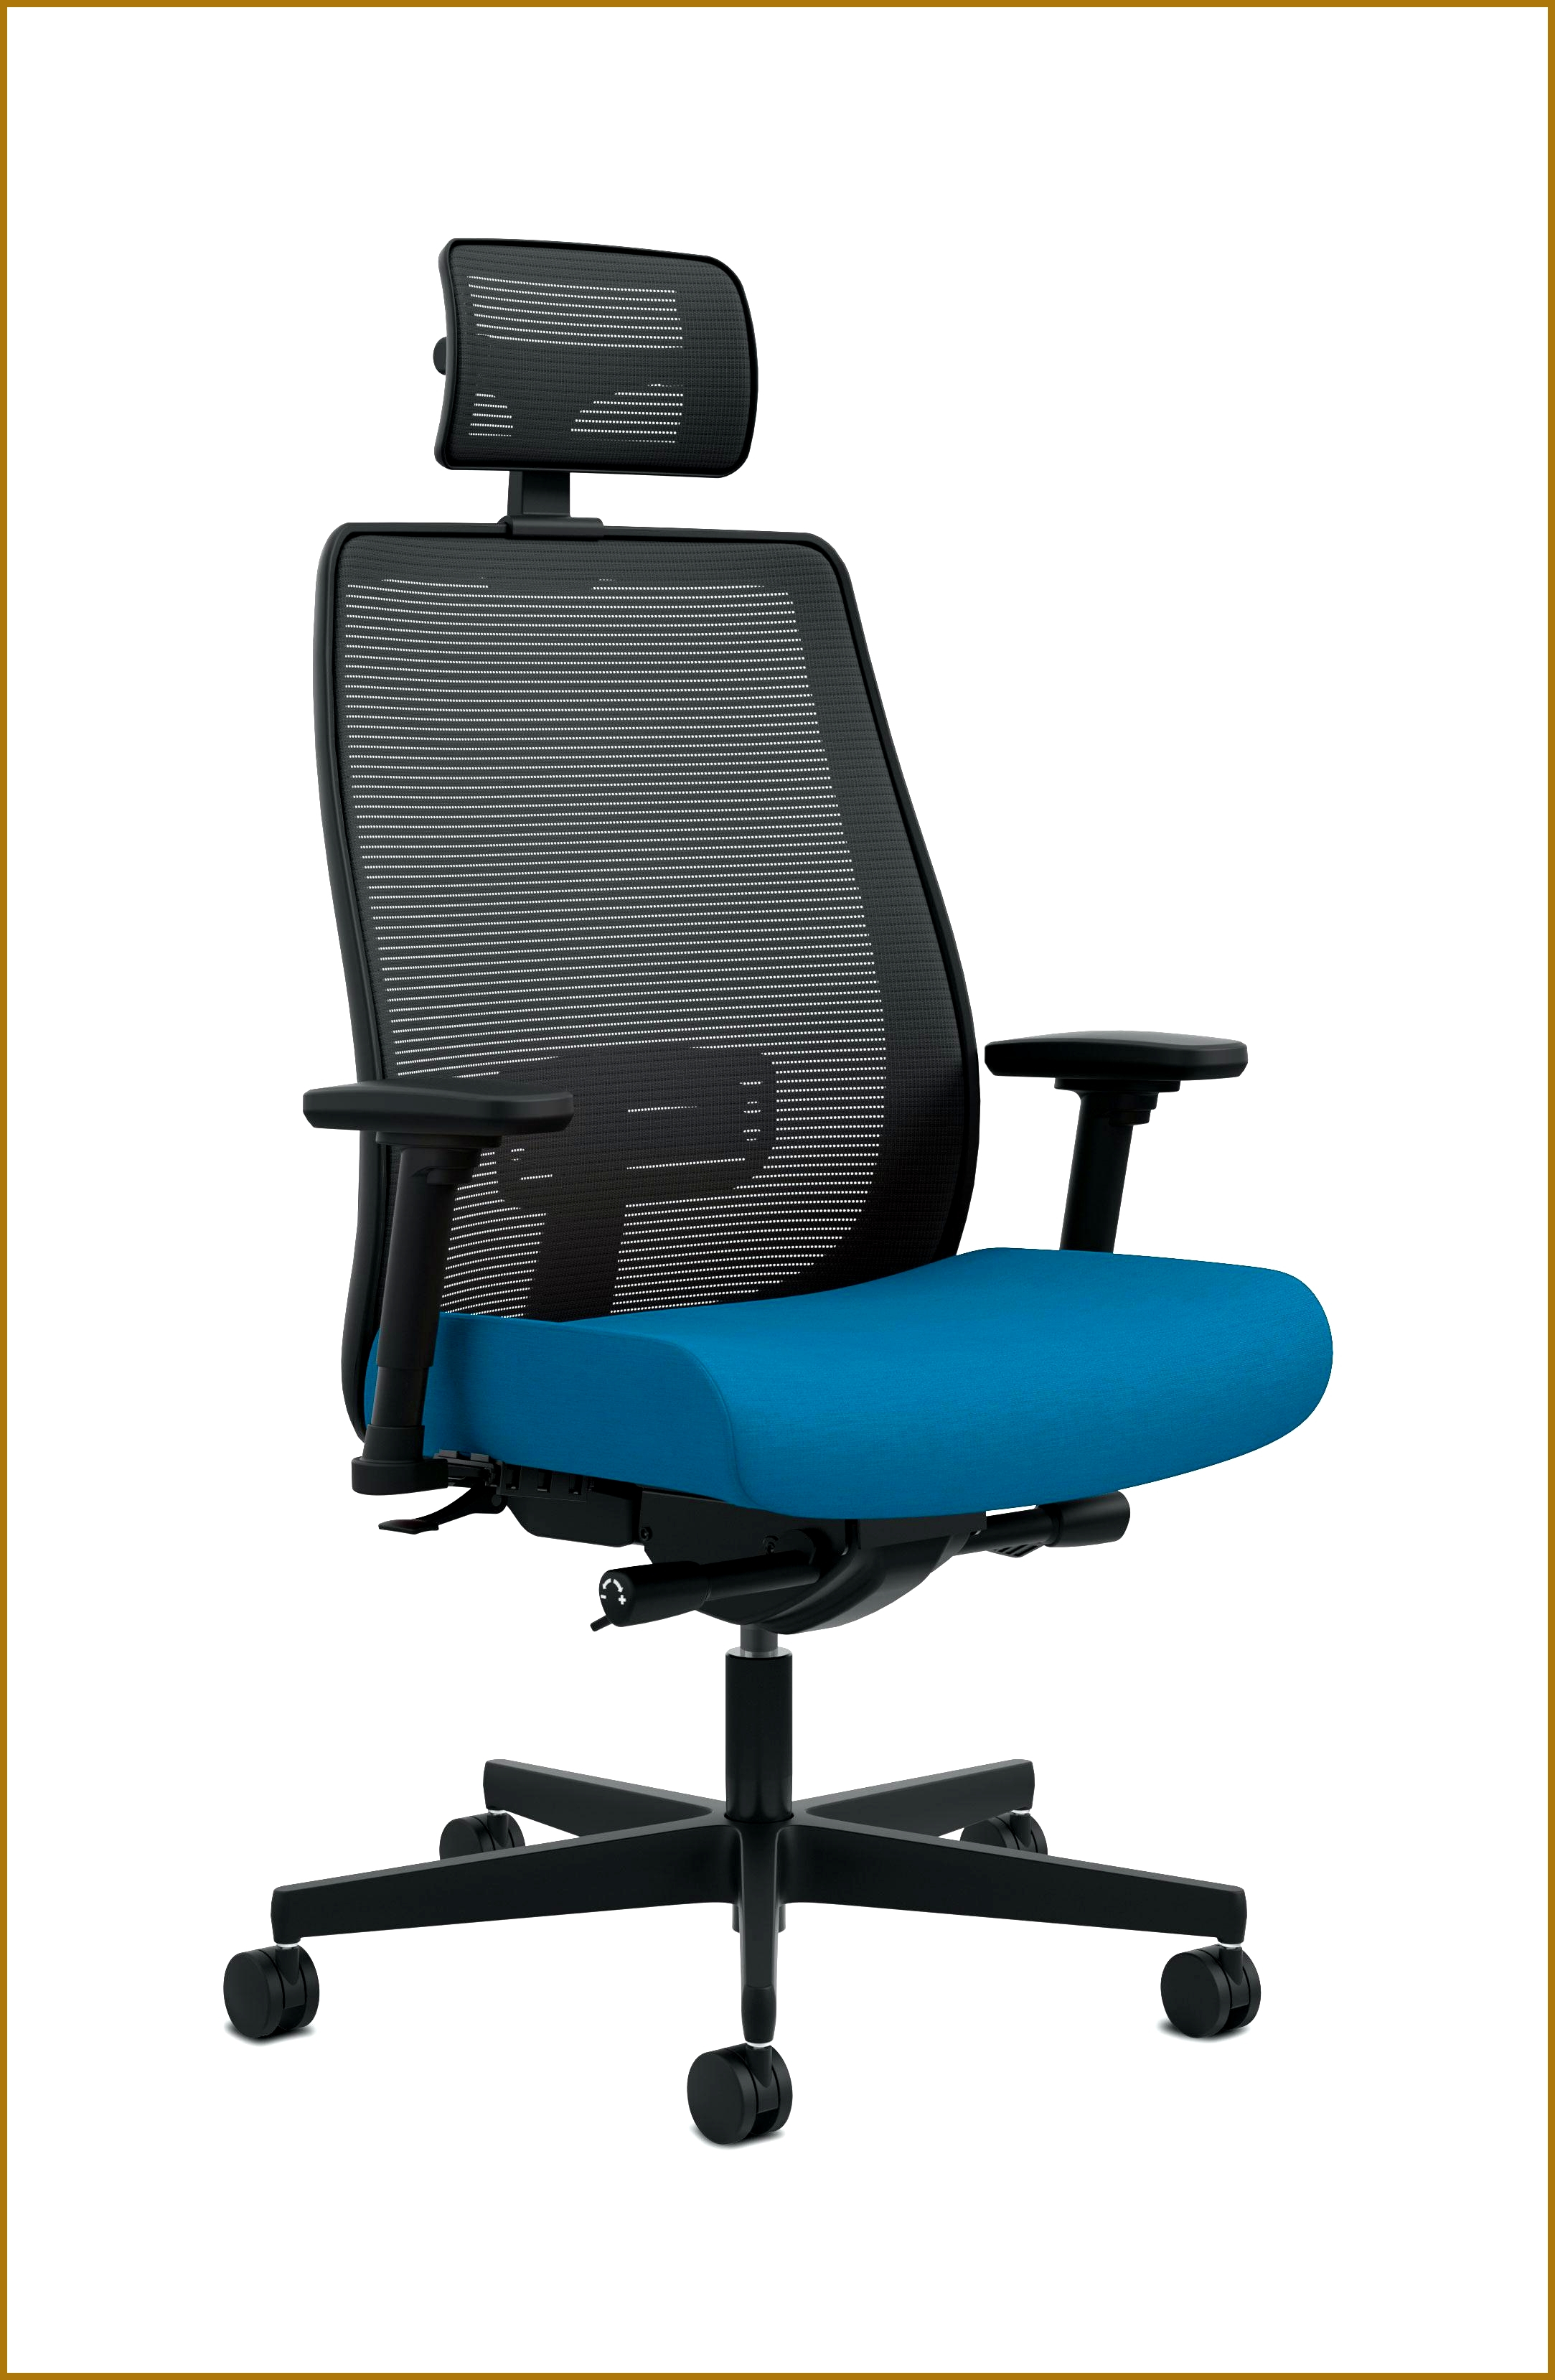 Headrest For Office Chair Beautiful Desk Chairs Office Chair in proportions 2167 X 3316